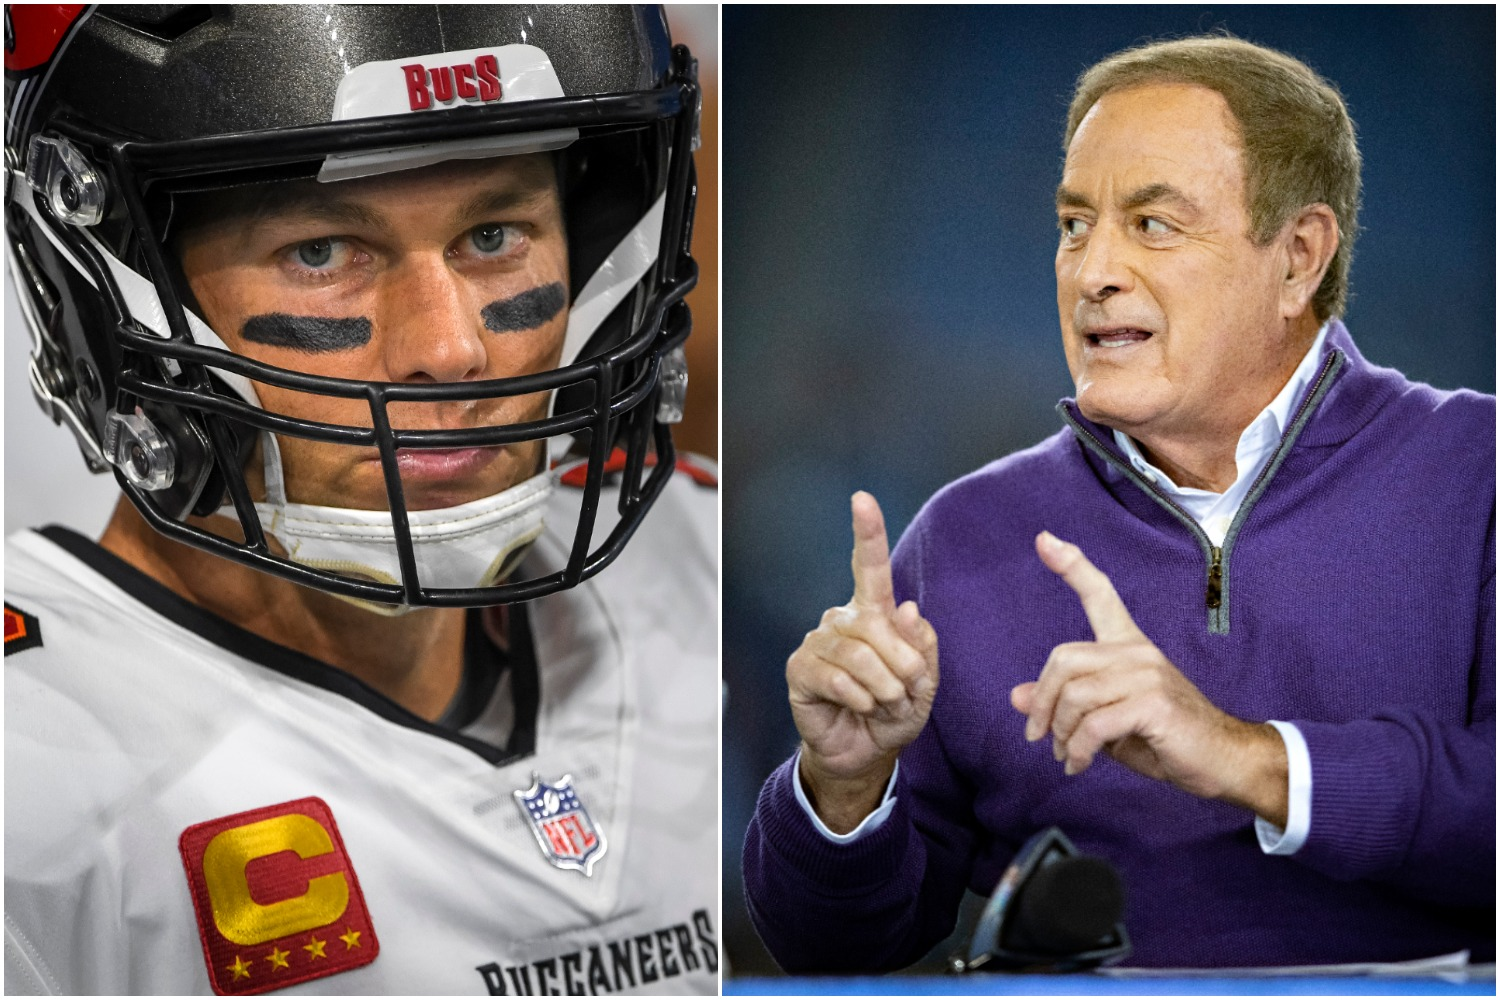 Al Michaels paid a steep price for betting against Tom Brady leaving the Patriots. In fact, he's missing $86,000 all because of Brady.